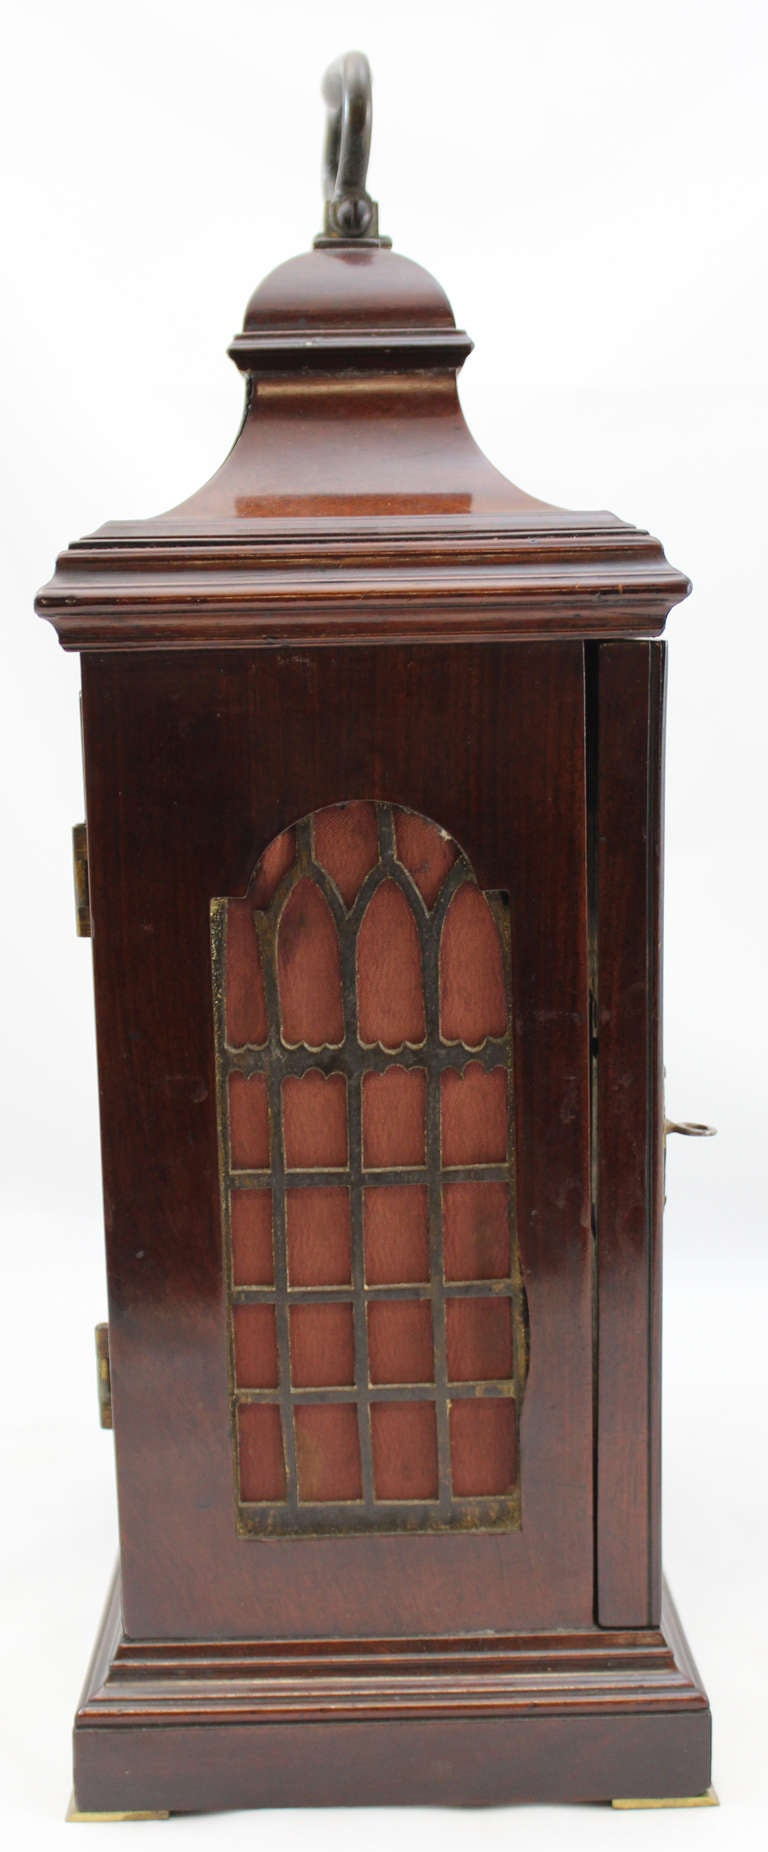 18th c English Edward Foster Mahogany Table or Bracket Clock For Sale 5